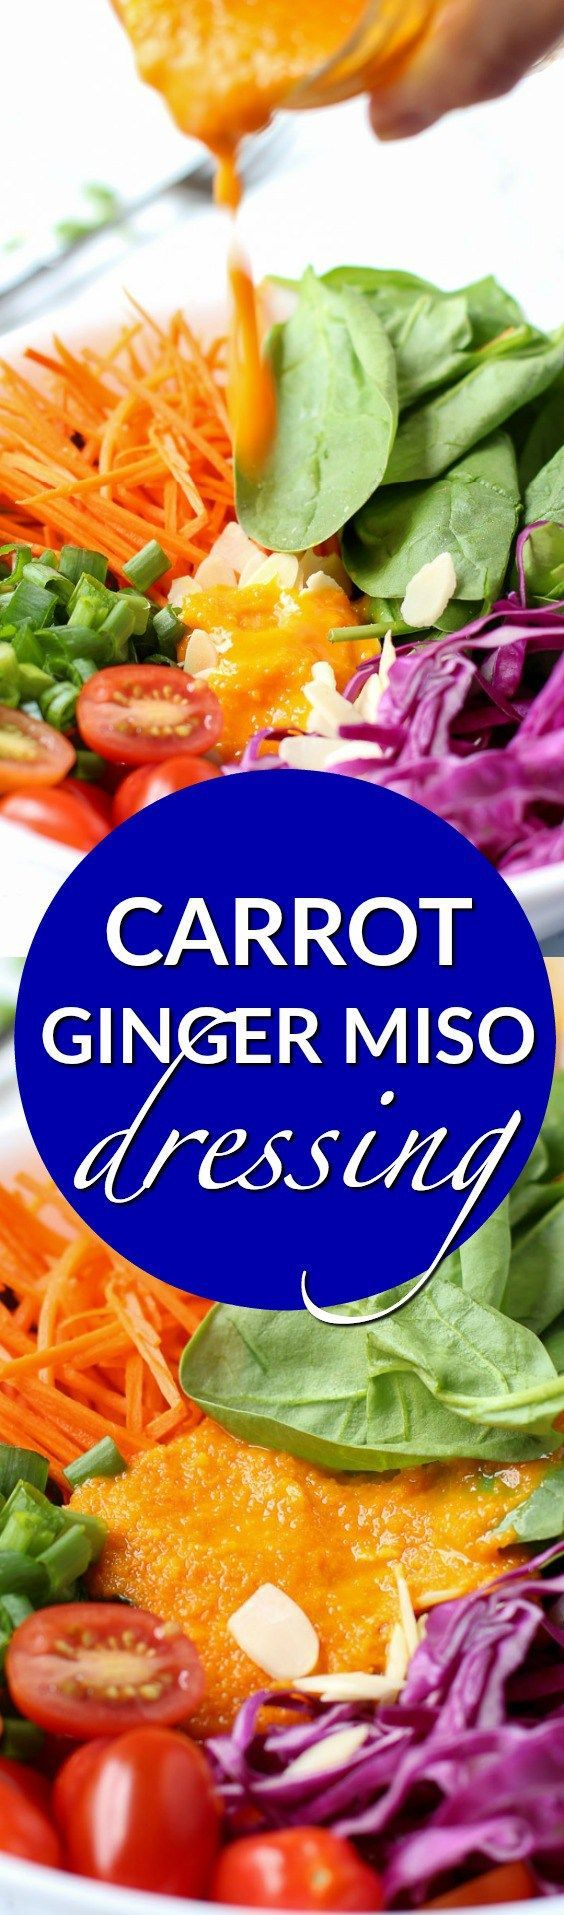 Carrot ginger miso dressing is a fresh and bright salad dressing that can easily be made at home in 5 minutes with 7 simple ingredients. |www.kimchichick.com